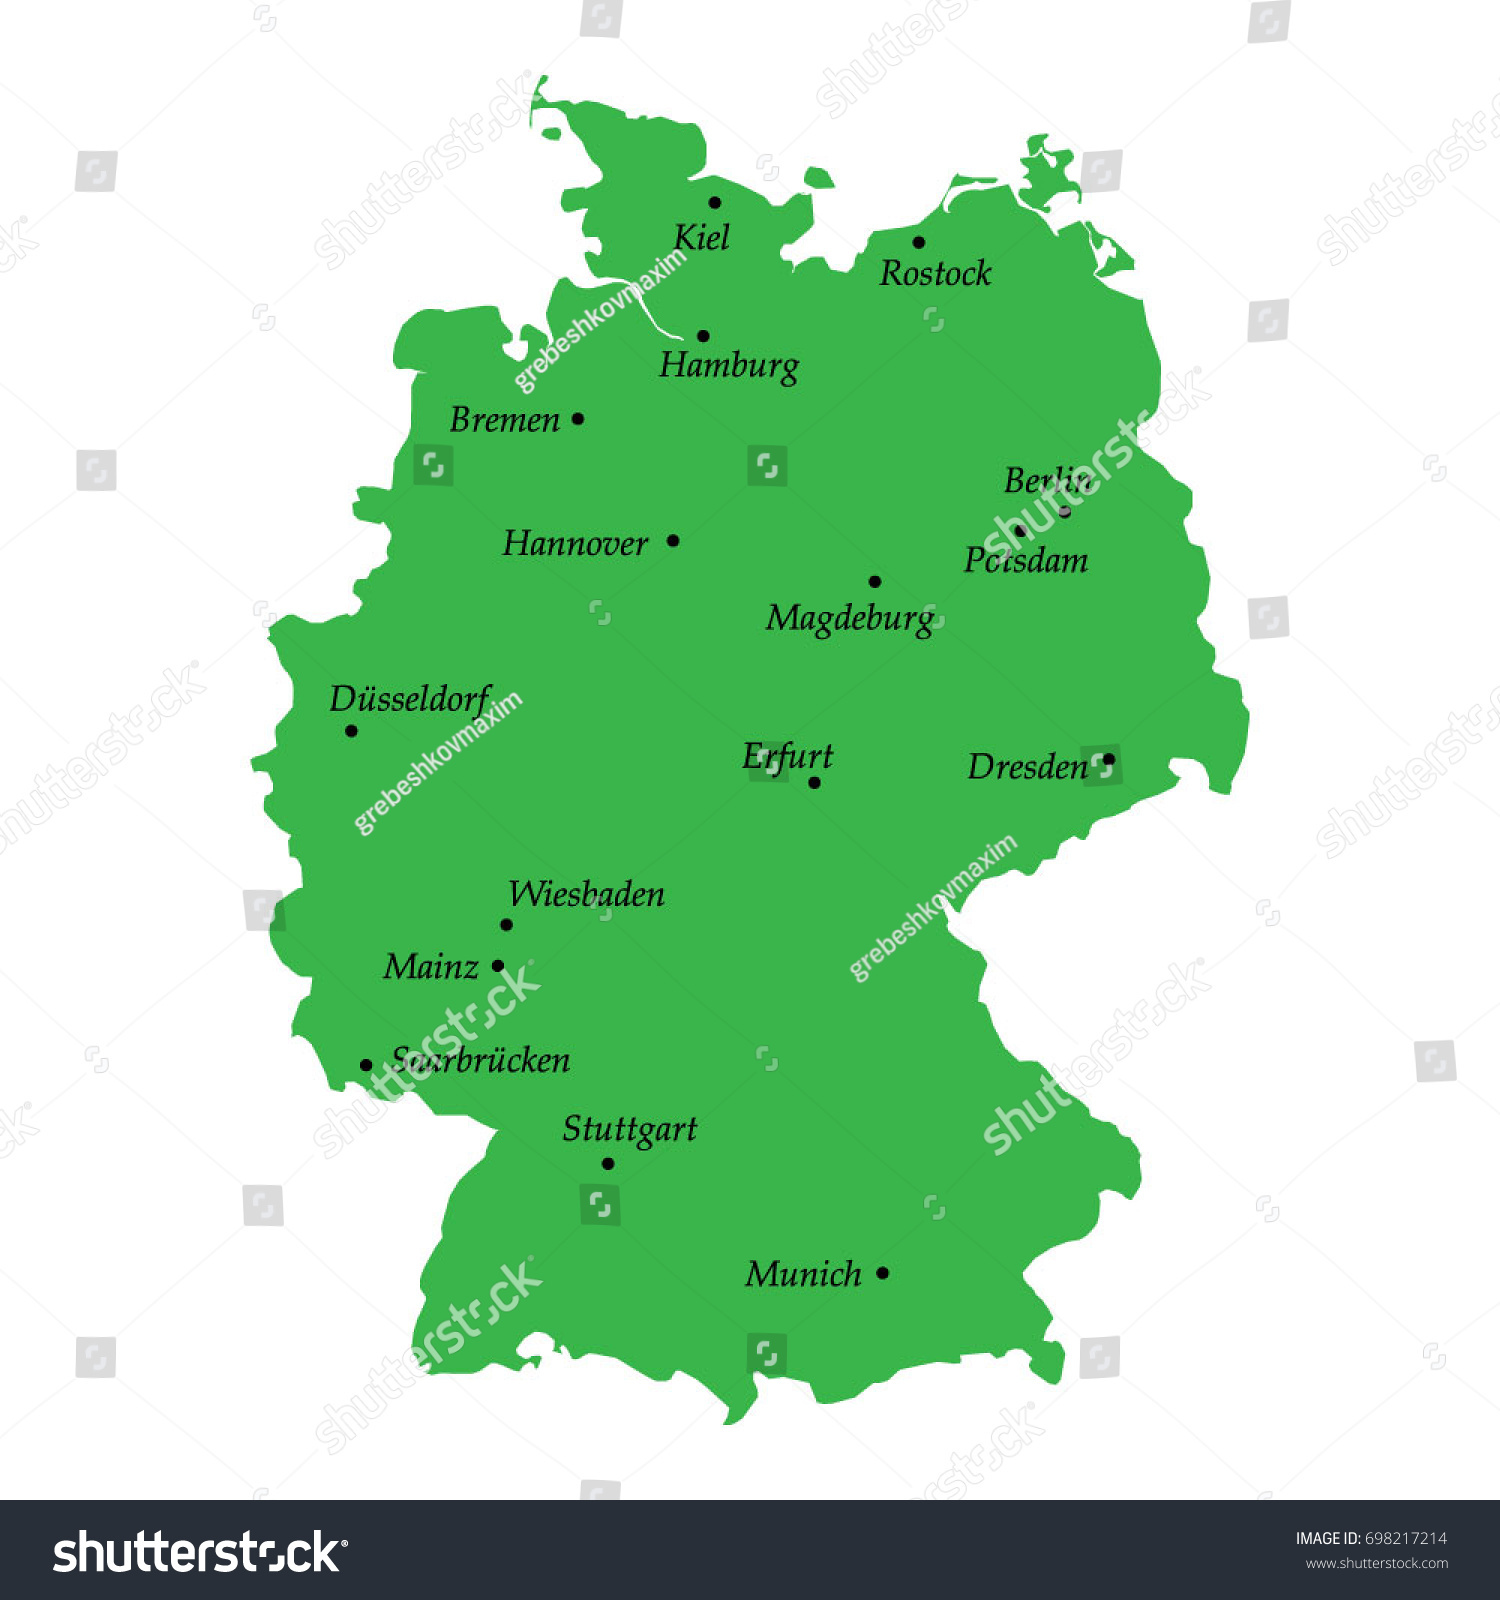 Map Germany Main Cities Stock Vector Shutterstock - Germany map main cities